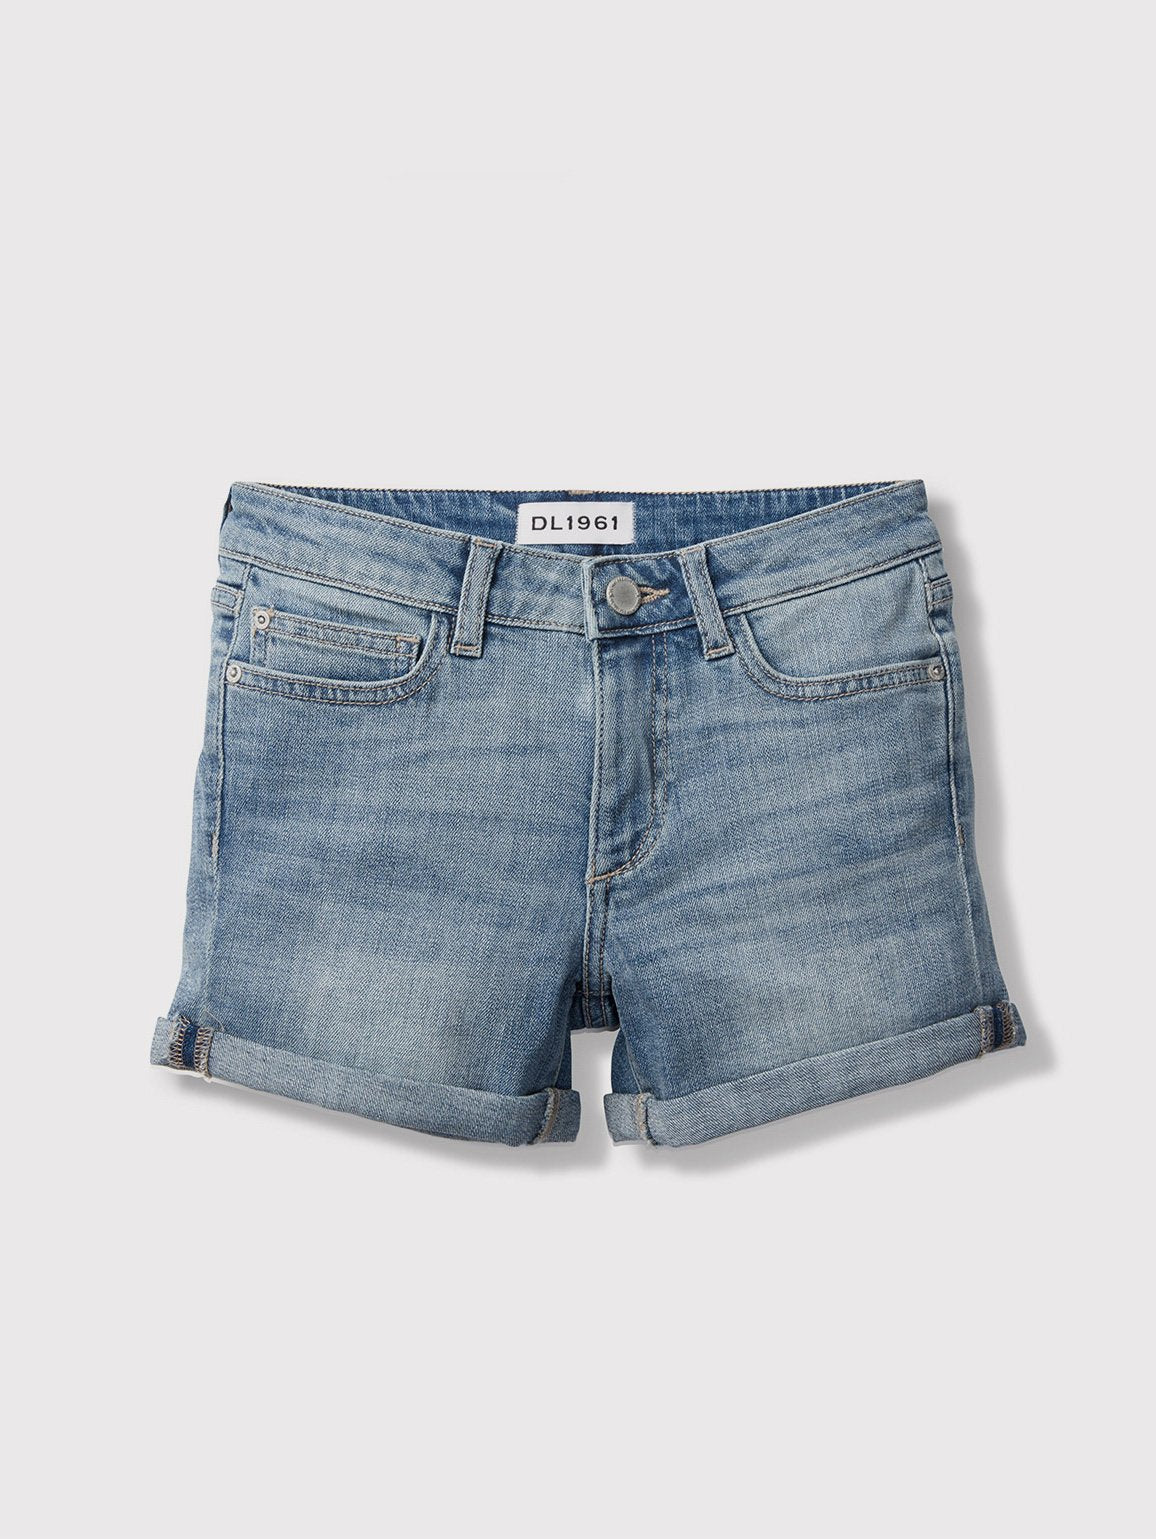 Girls - Piper/G Cuffed Short Granola - DL1961